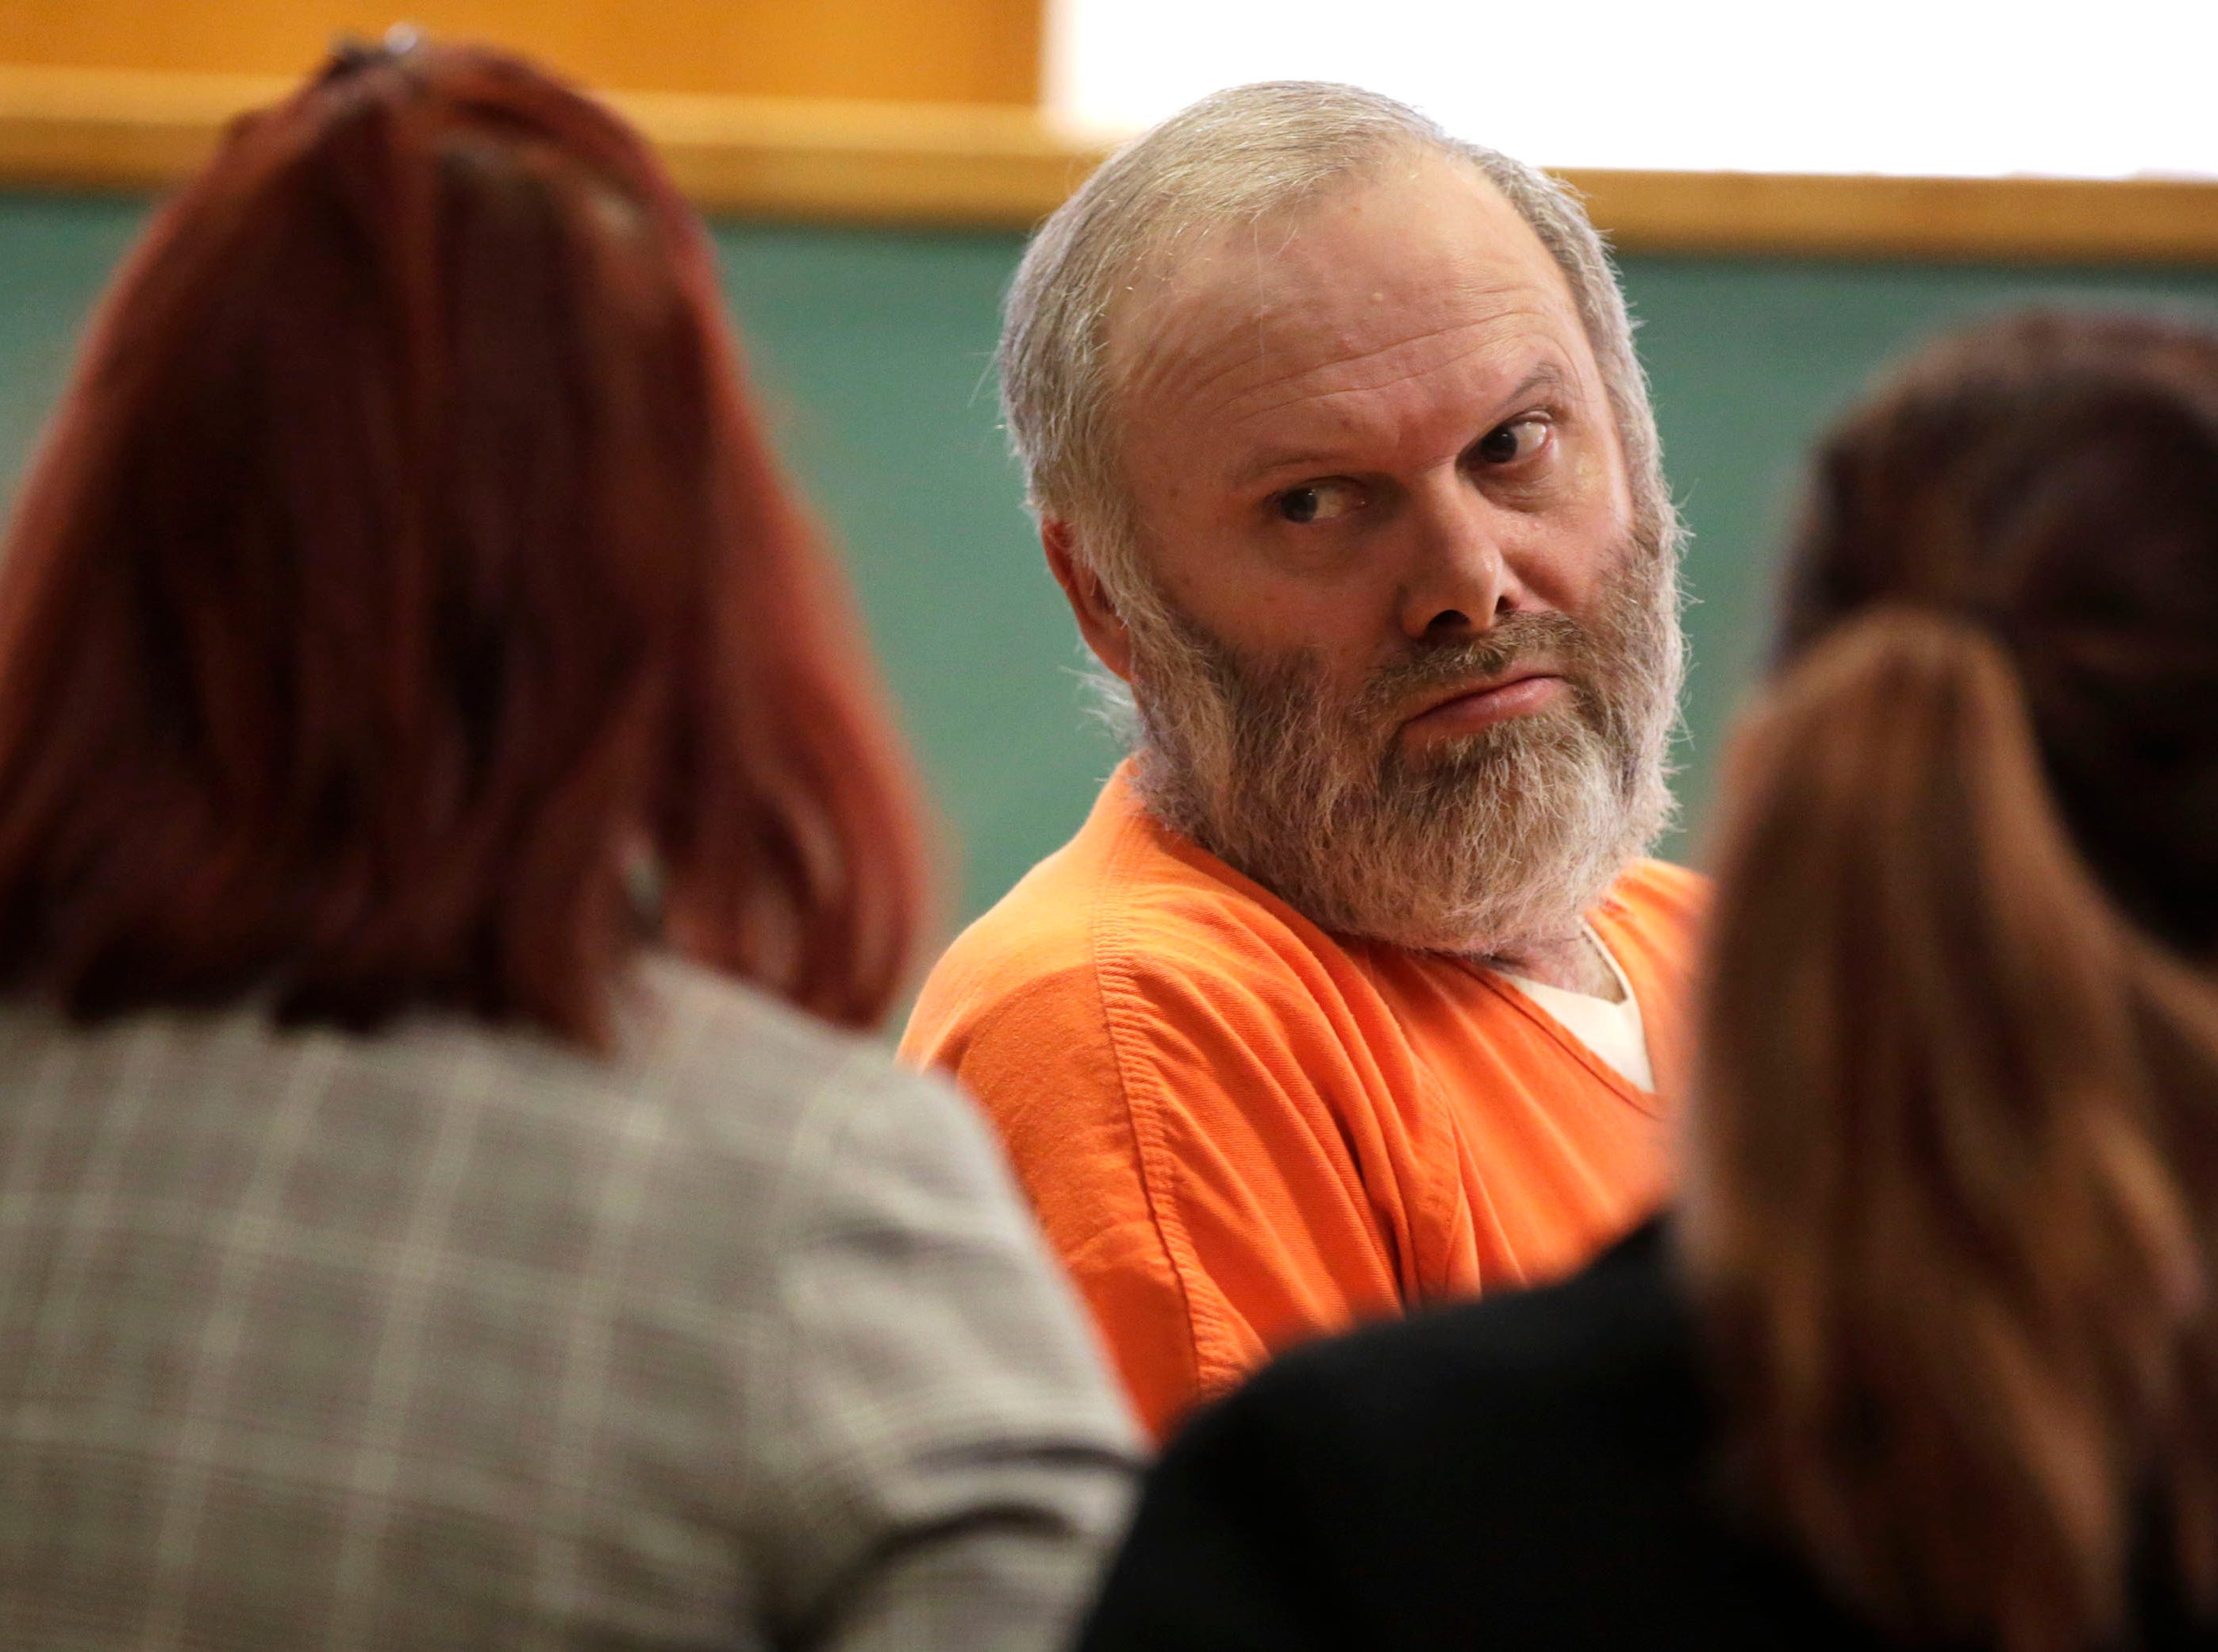 Defendant Gary Bohman talks with his attorneys before exiting the courtroom after a sentencing hearing on Tuesday, December 18, 2018, at the Wood County courthouse in Wisconsin Rapids, Wis. Bohman was sentenced to life in prison with no possibility of parole for the murder of Christopher Race.Tork Mason/USA TODAY NETWORK-Wisconsin